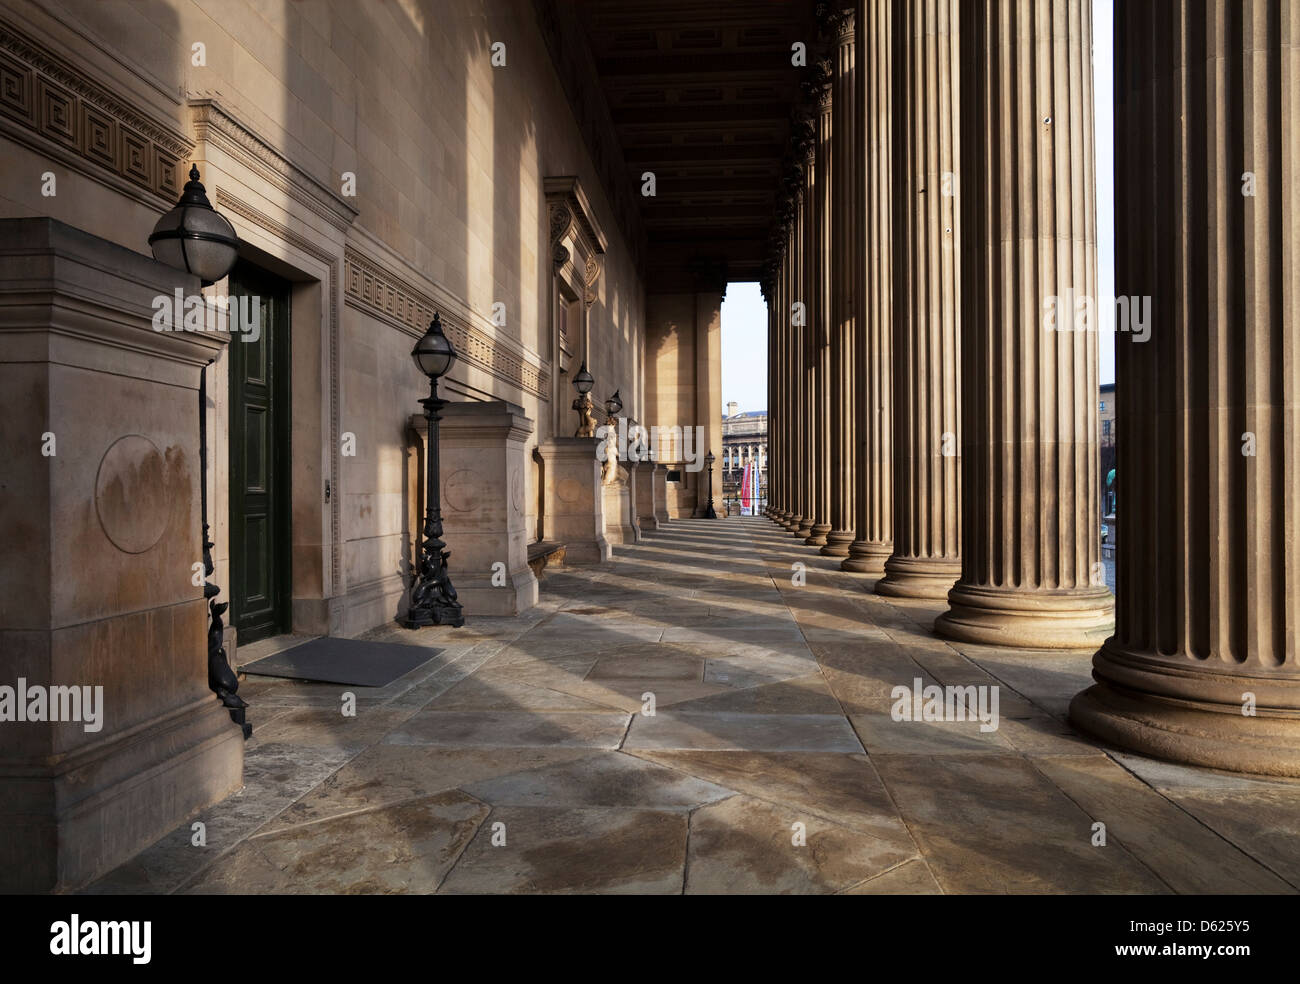 The central portico of Corinthian columns, St George's Hall, Lime Street, Liverpool, Merseyside, England - Stock Image